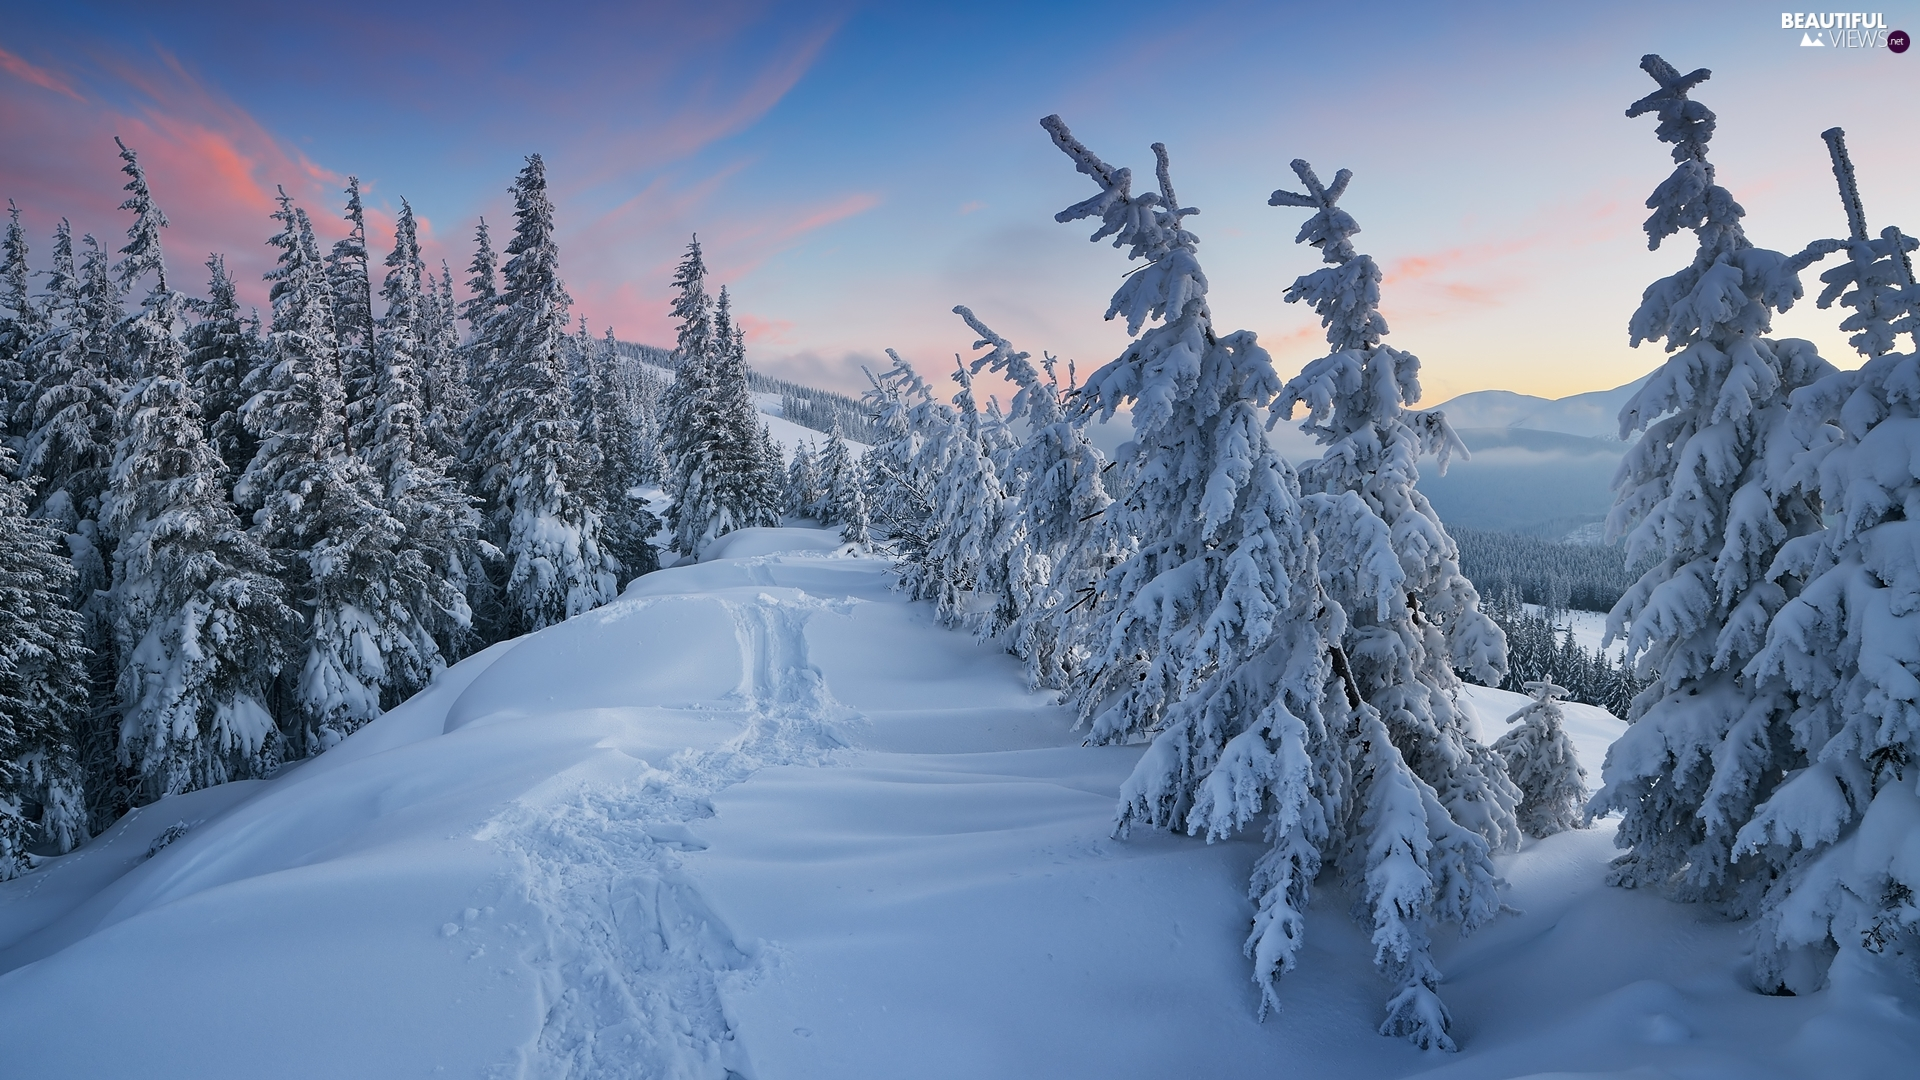 winter, Spruces, Hill, Snowy